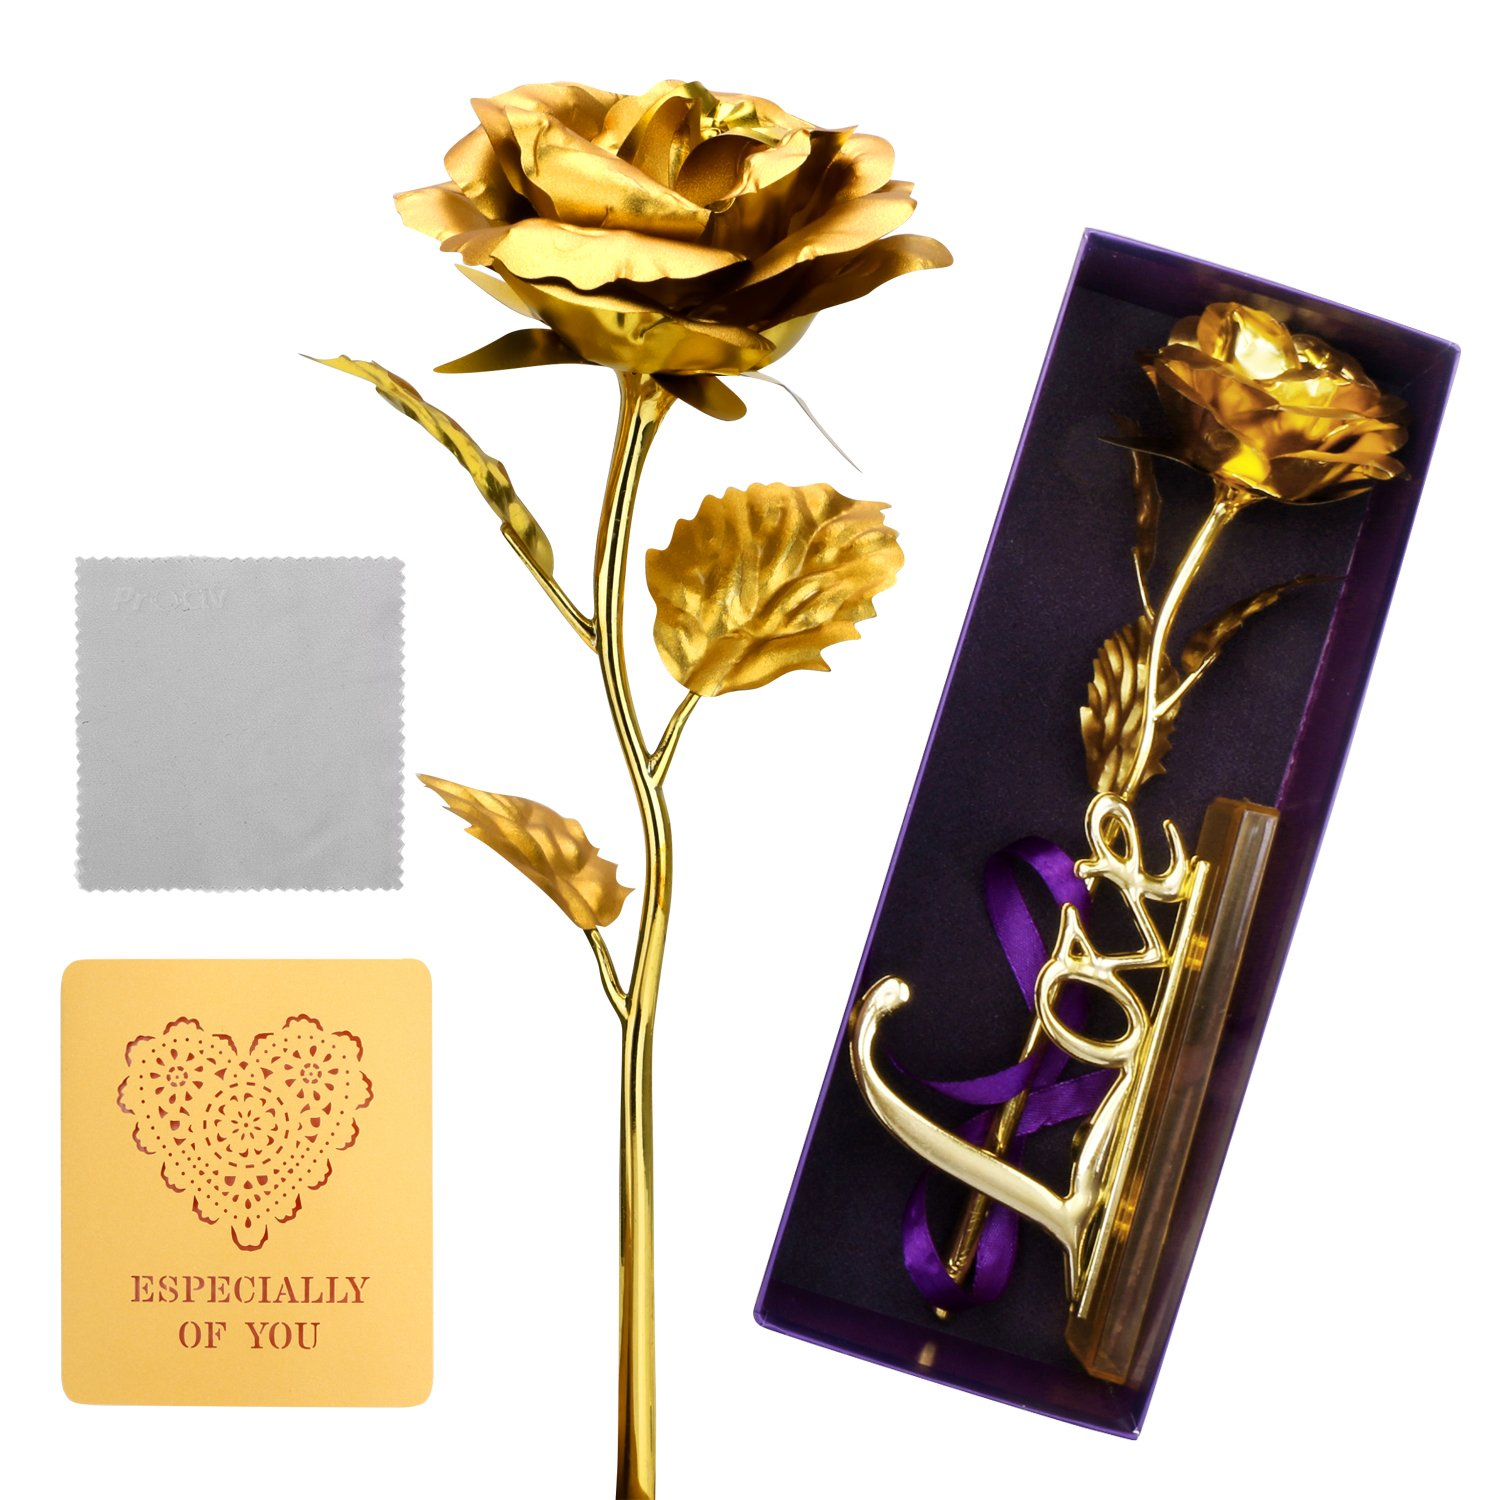 ProCIV Gold Roses, 24K Gold Foil Decoration Artificial Rose Flowers in Gift Box, Best Gift for Mother's Day, Valentine's Day, Wedding Day, Birthday, Christmas, Thanksgiving, Home Decor by ProCIV (Image #1)